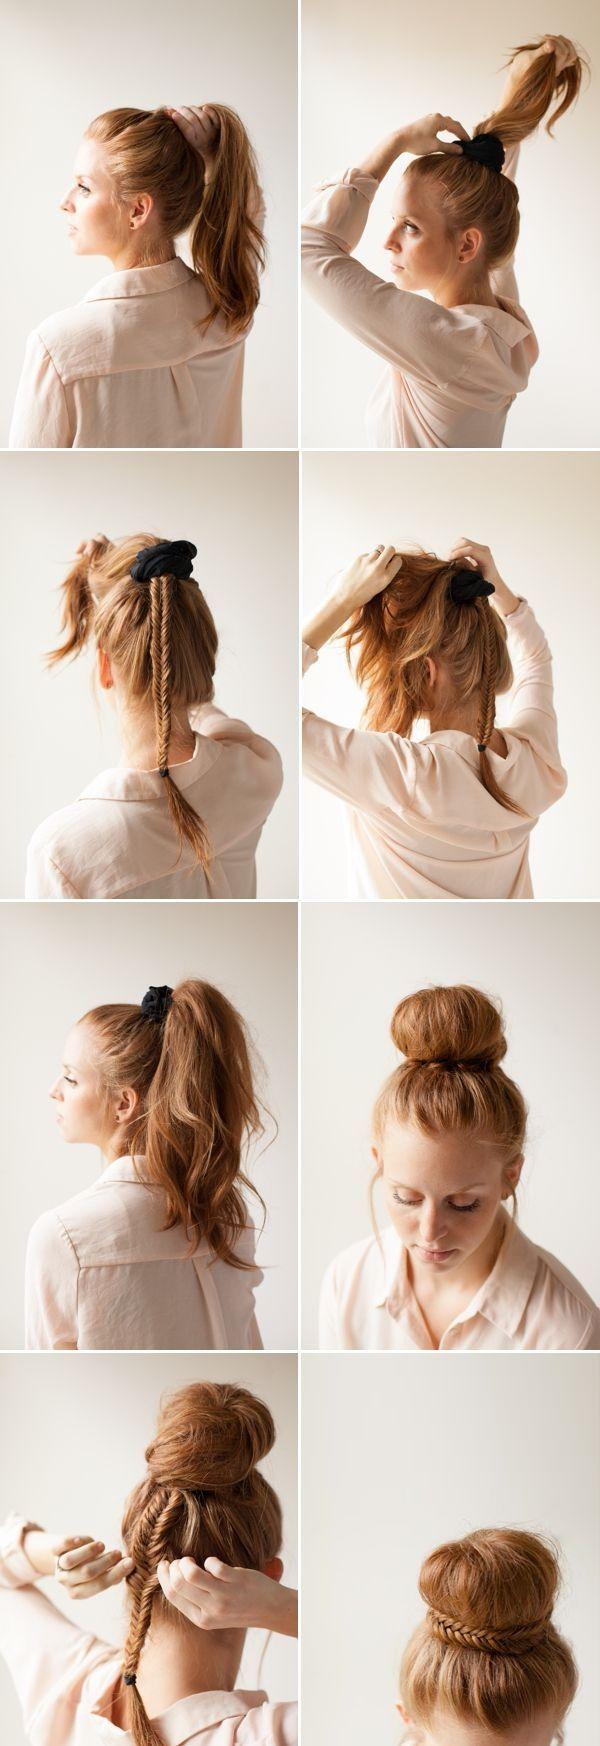 Make Everyone Jealous with Easy Bun Hairstyles for Women